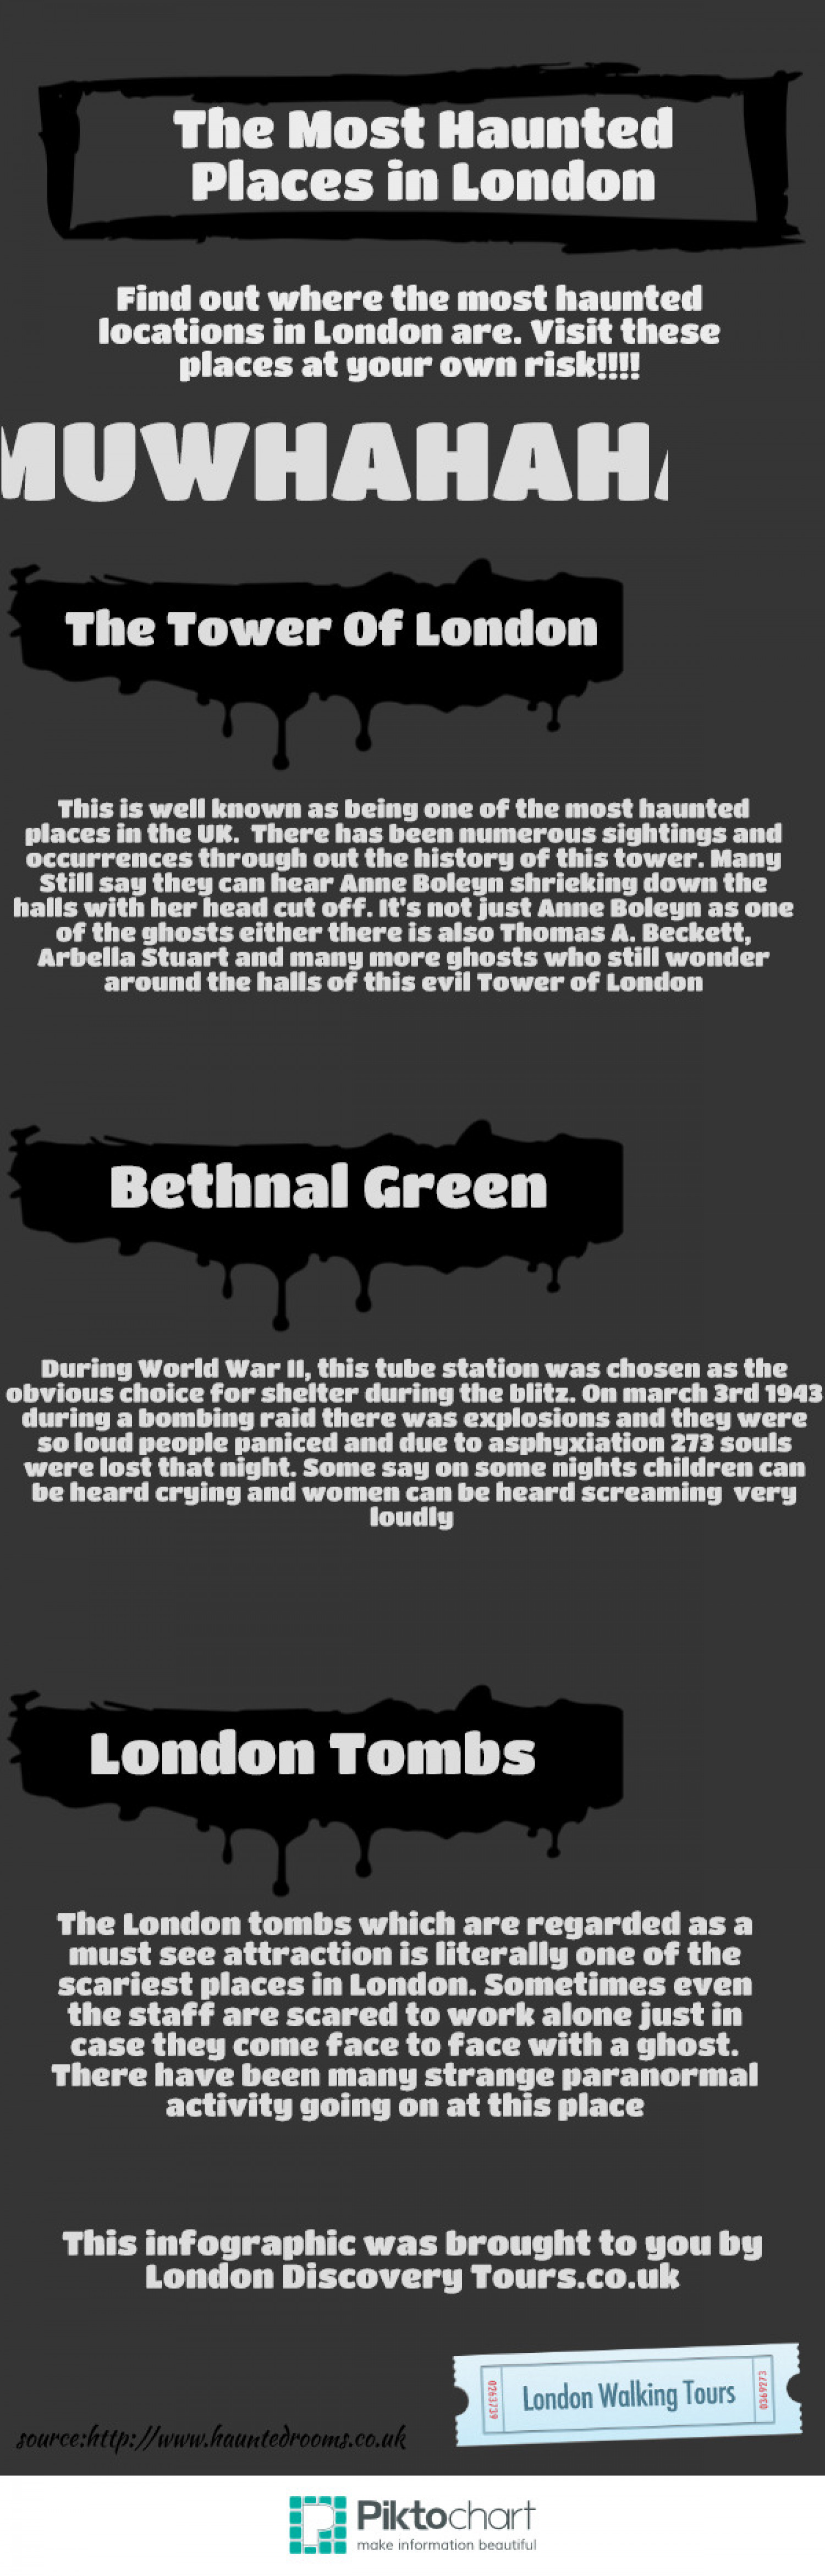 The Most Haunted Places in London Infographic